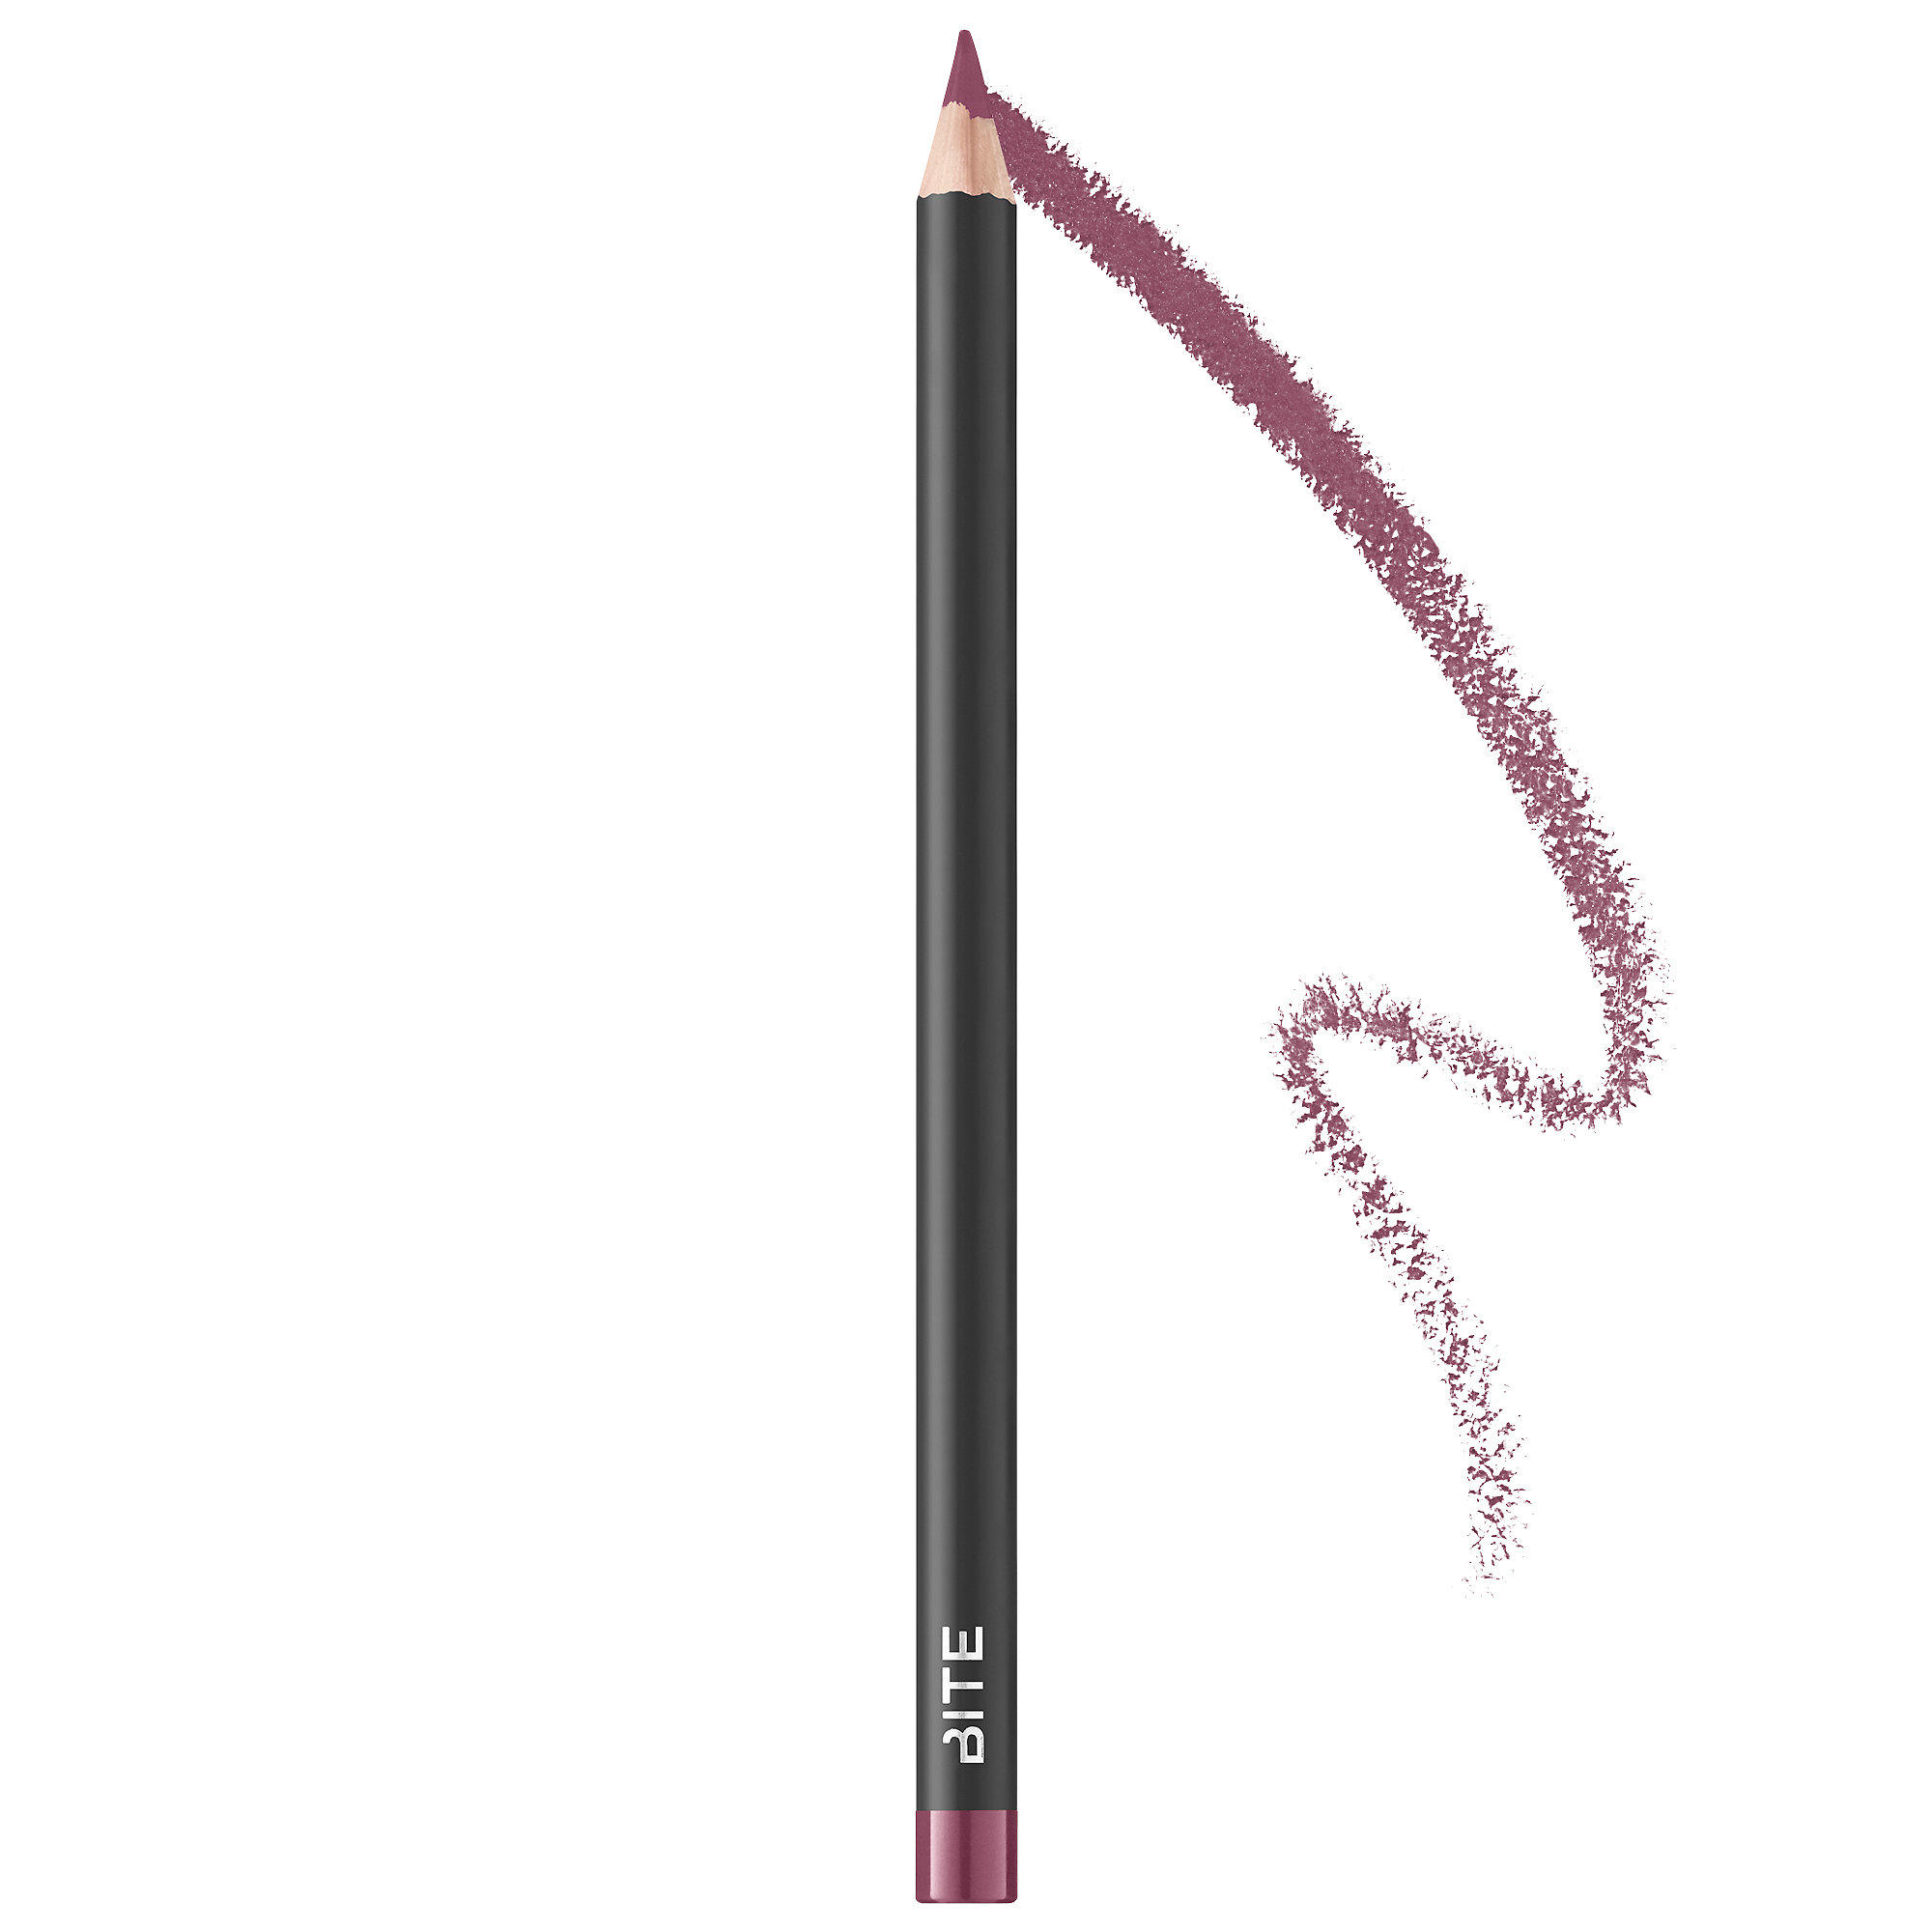 Bite Beauty The Lip Pencil Dusty Mauve 014